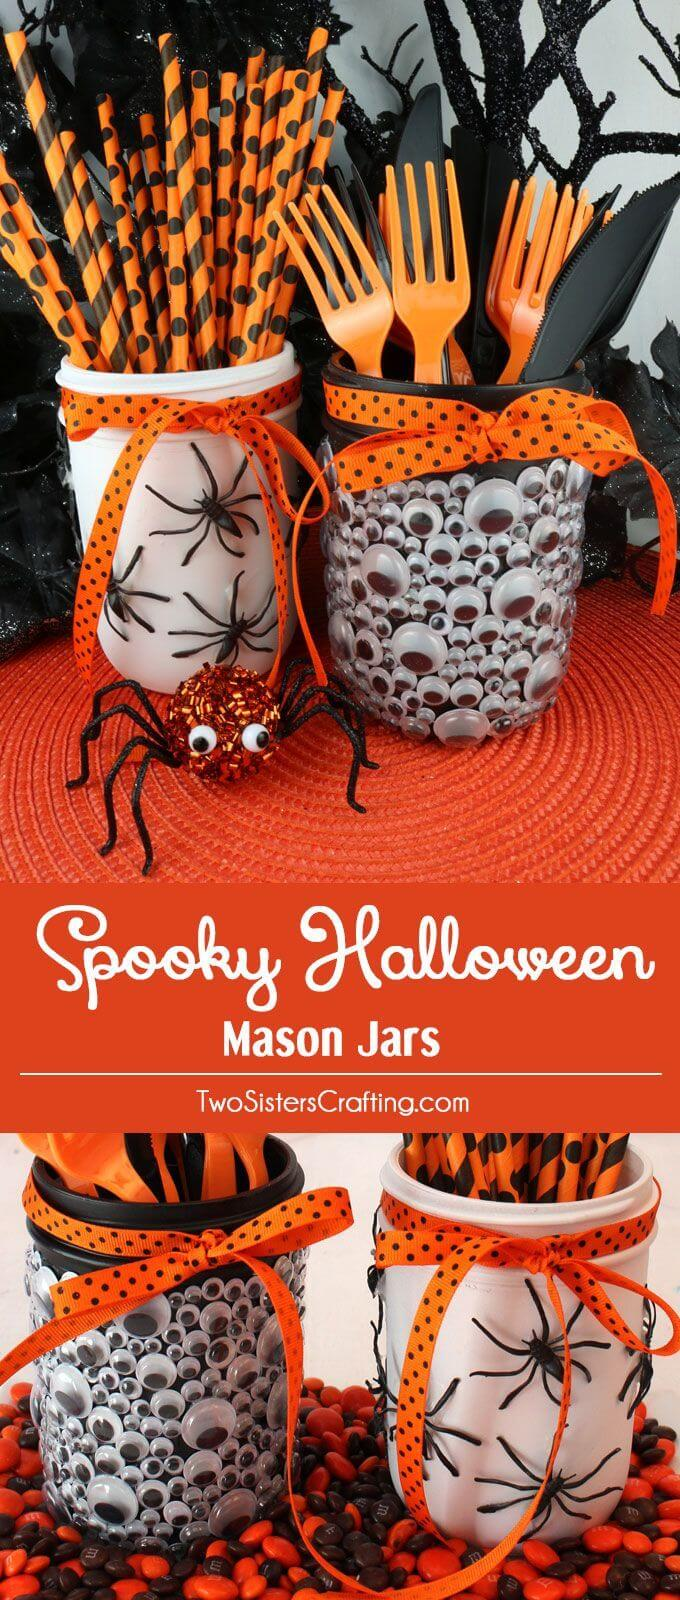 DIY Mason Jar Halloween Crafts: Creepy Mason Jar Halloween Crafts Party Decor